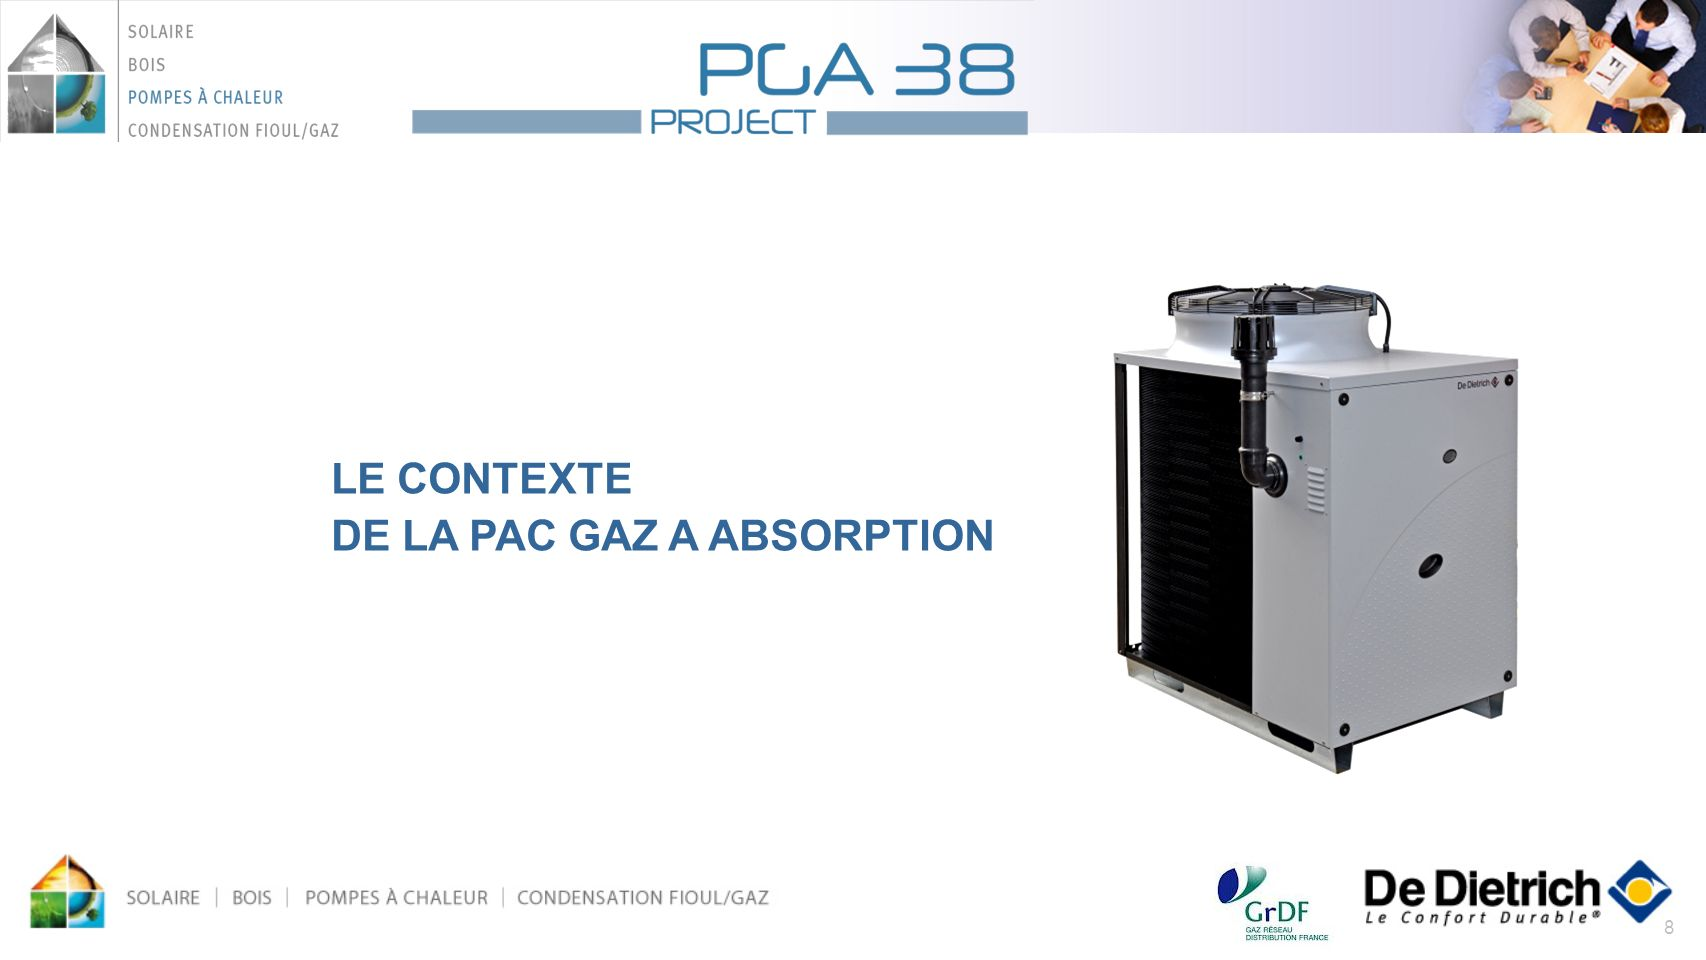 LE CONTEXTE DE LA PAC GAZ A ABSORPTION